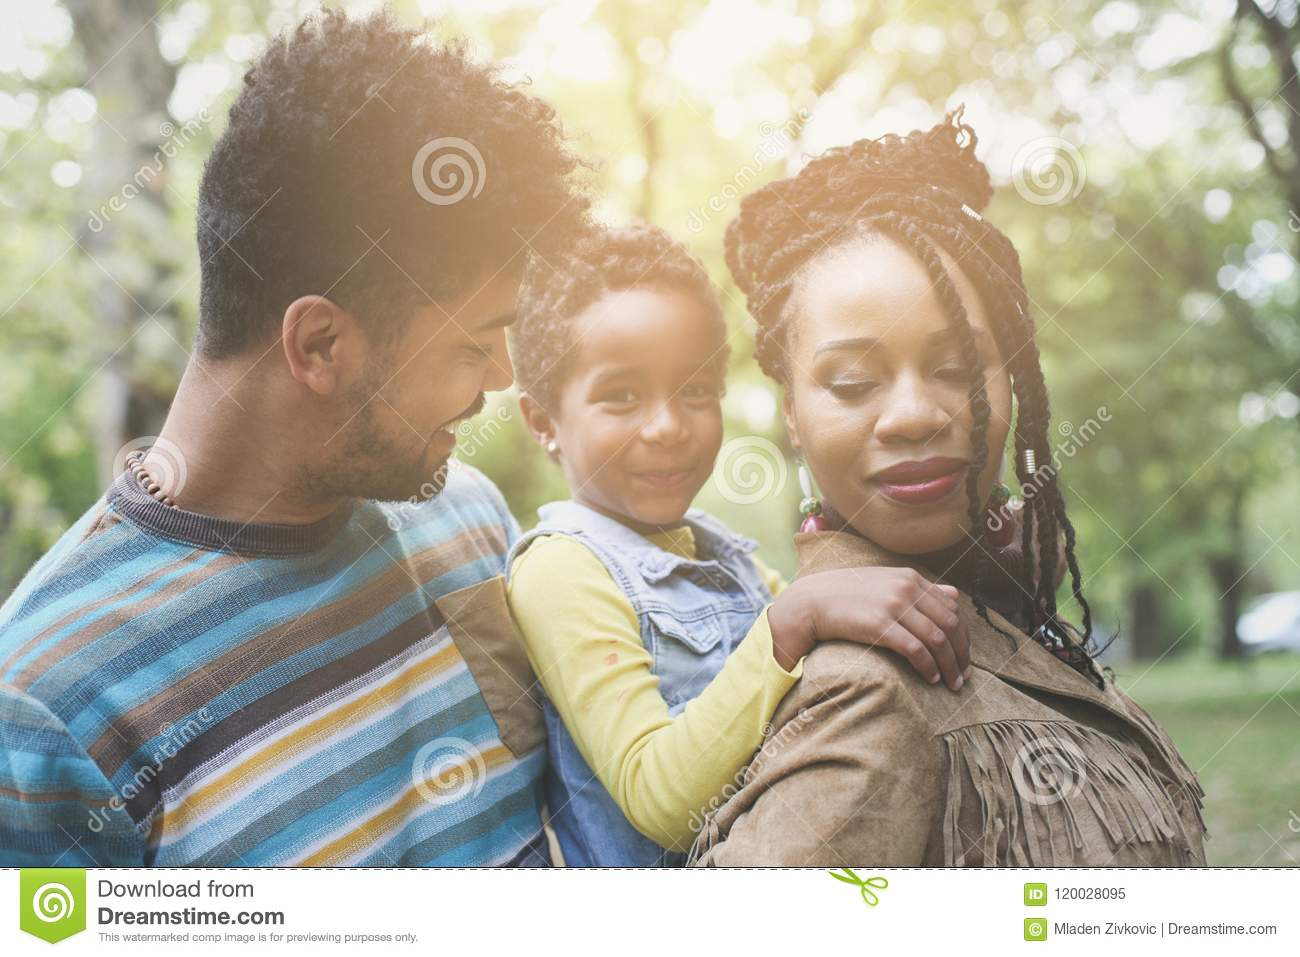 Portrait of young African American family in park.